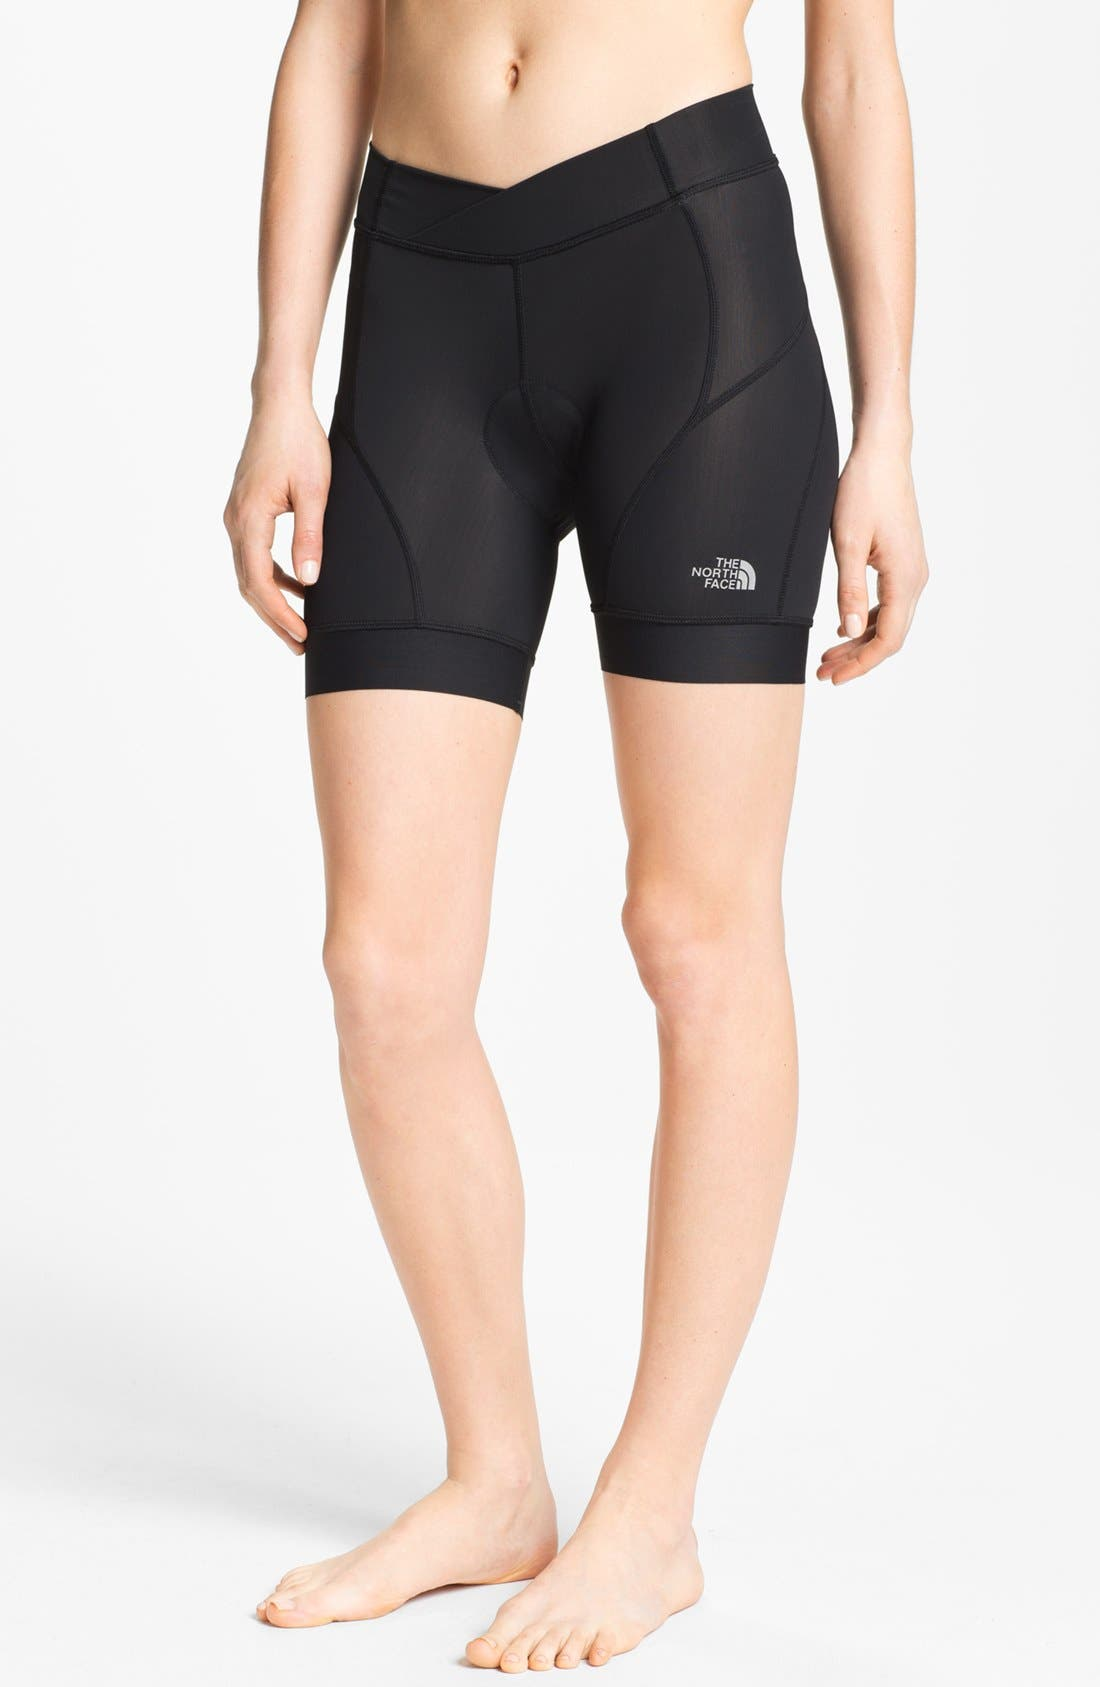 Main Image - The North Face 'Slickrock' Padded Chamois Bike Shorts